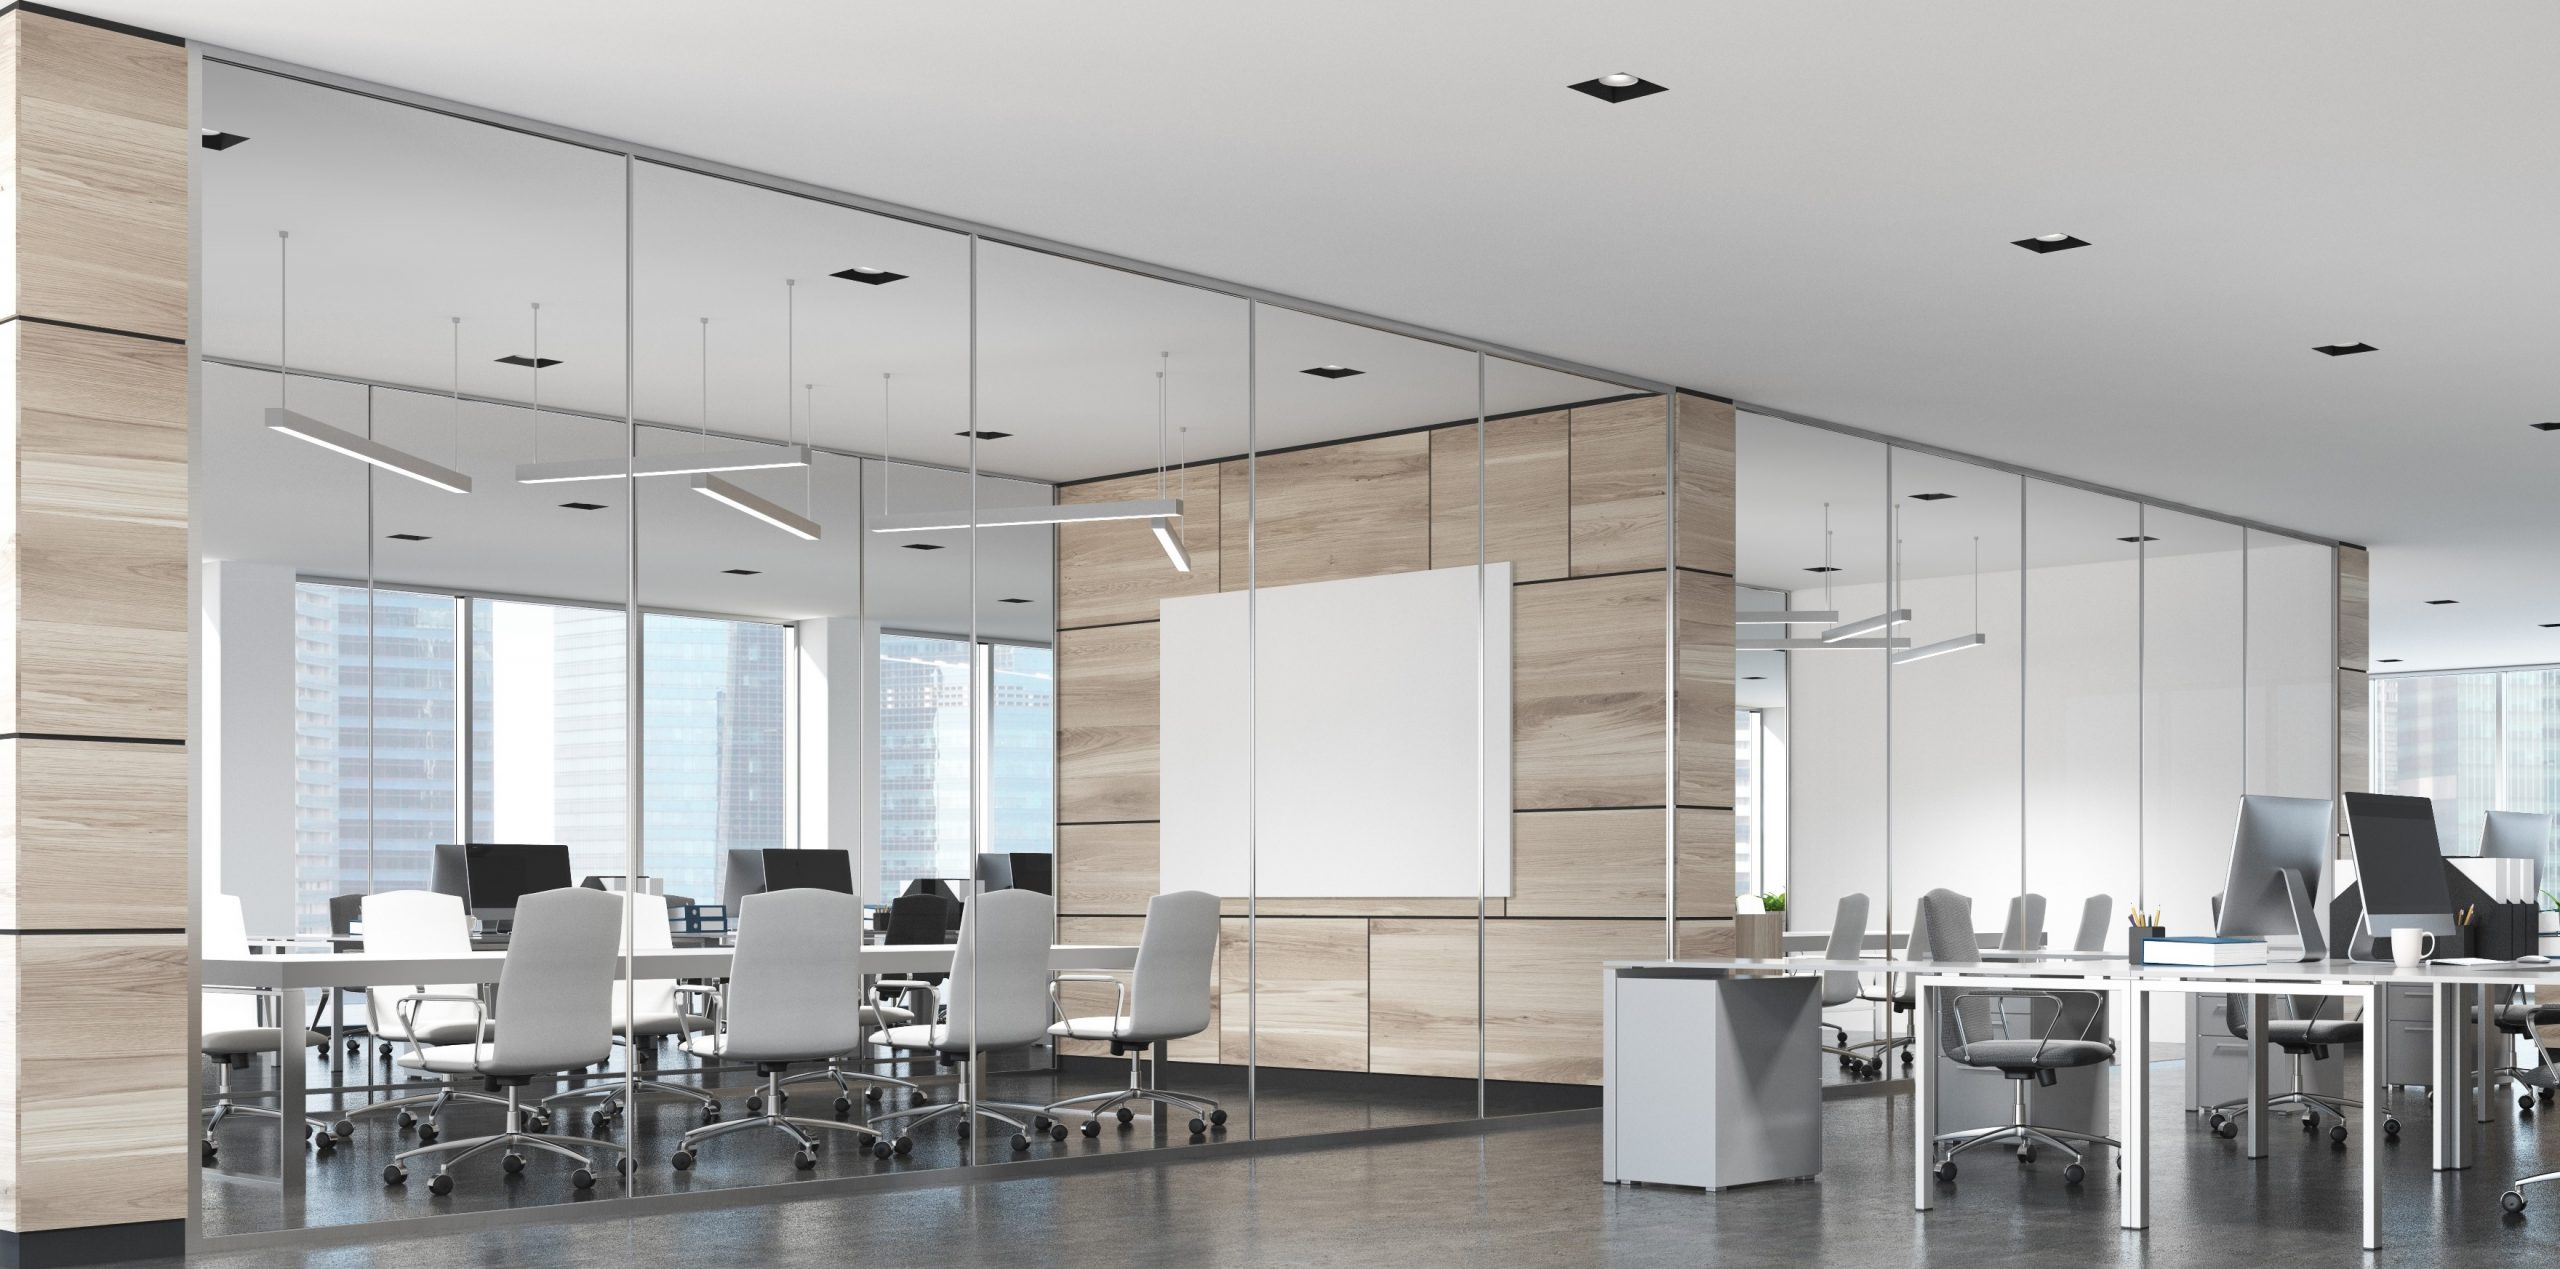 Interested in a glass wall system for space management?